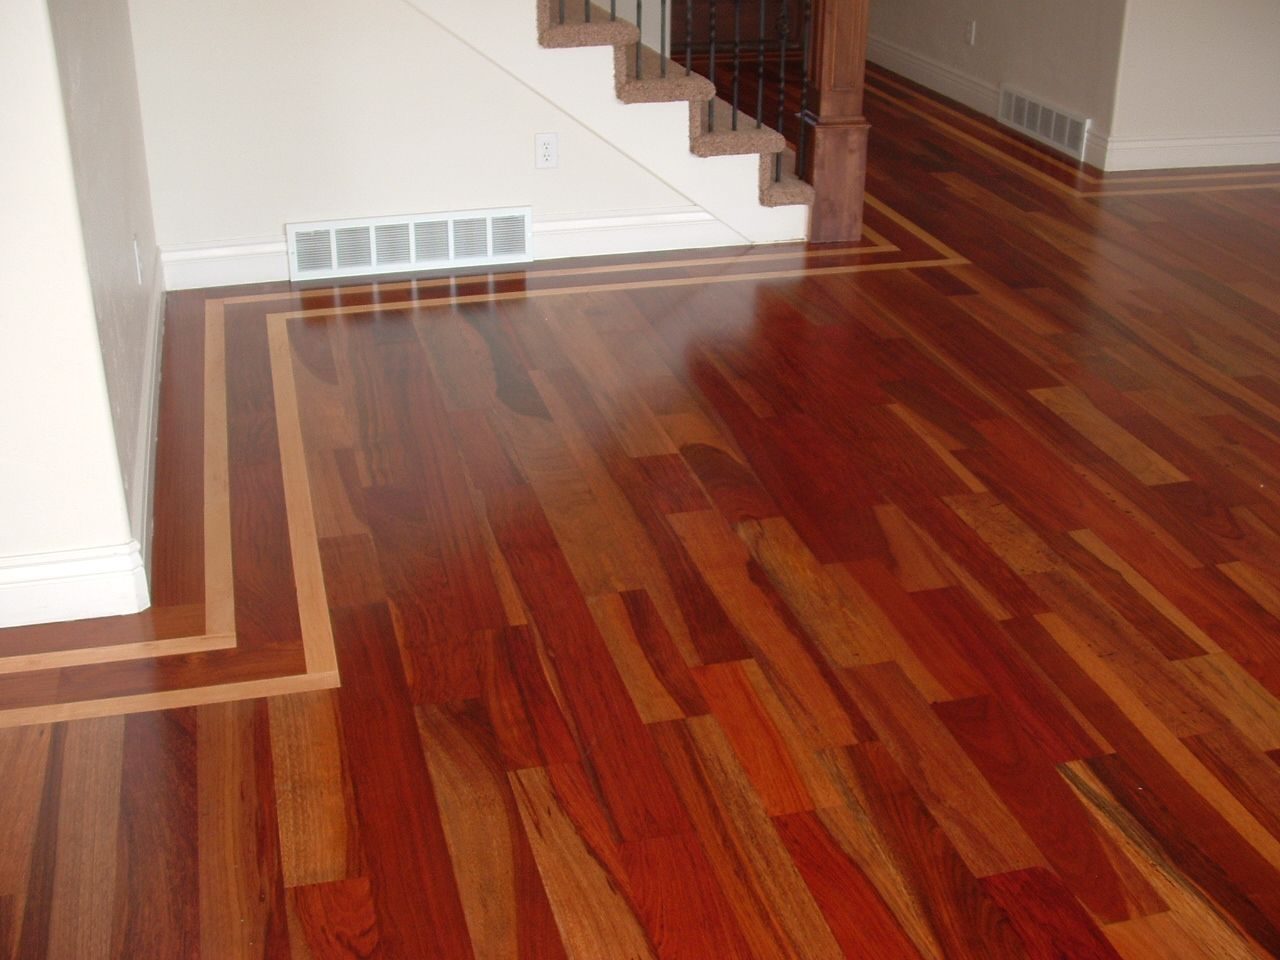 Brazilian cherry hardwood flooring flooring ideas home for Floating hardwood floor